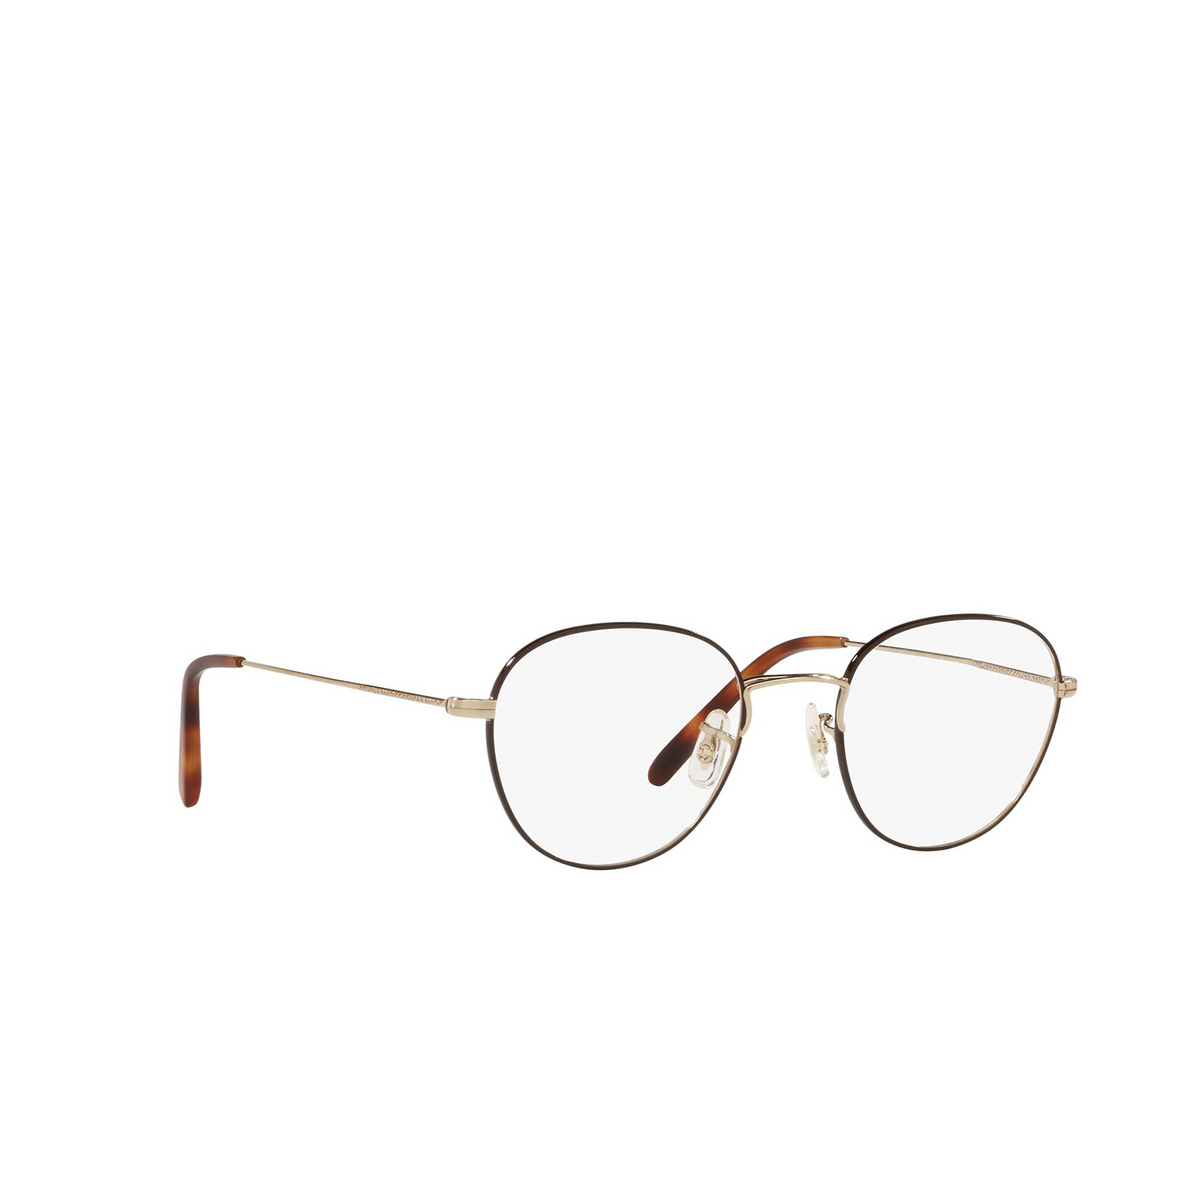 Oliver Peoples® Round Eyeglasses: Piercy OV1281 color Brushed Gold / Tortoise 5316 - three-quarters view.